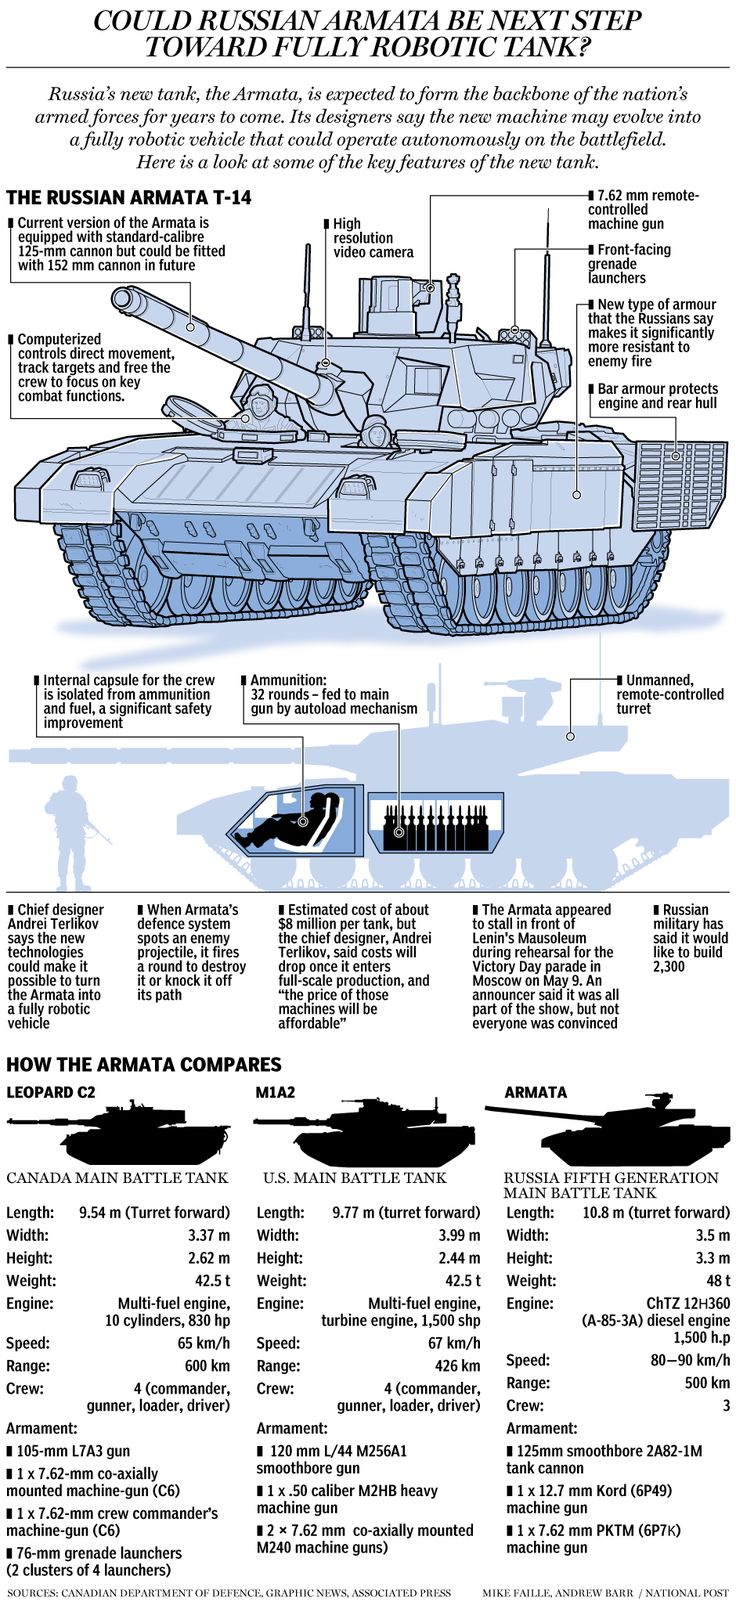 British intelligence warns Russian vehicle is 'the most revolutionary change in tank design (tr)